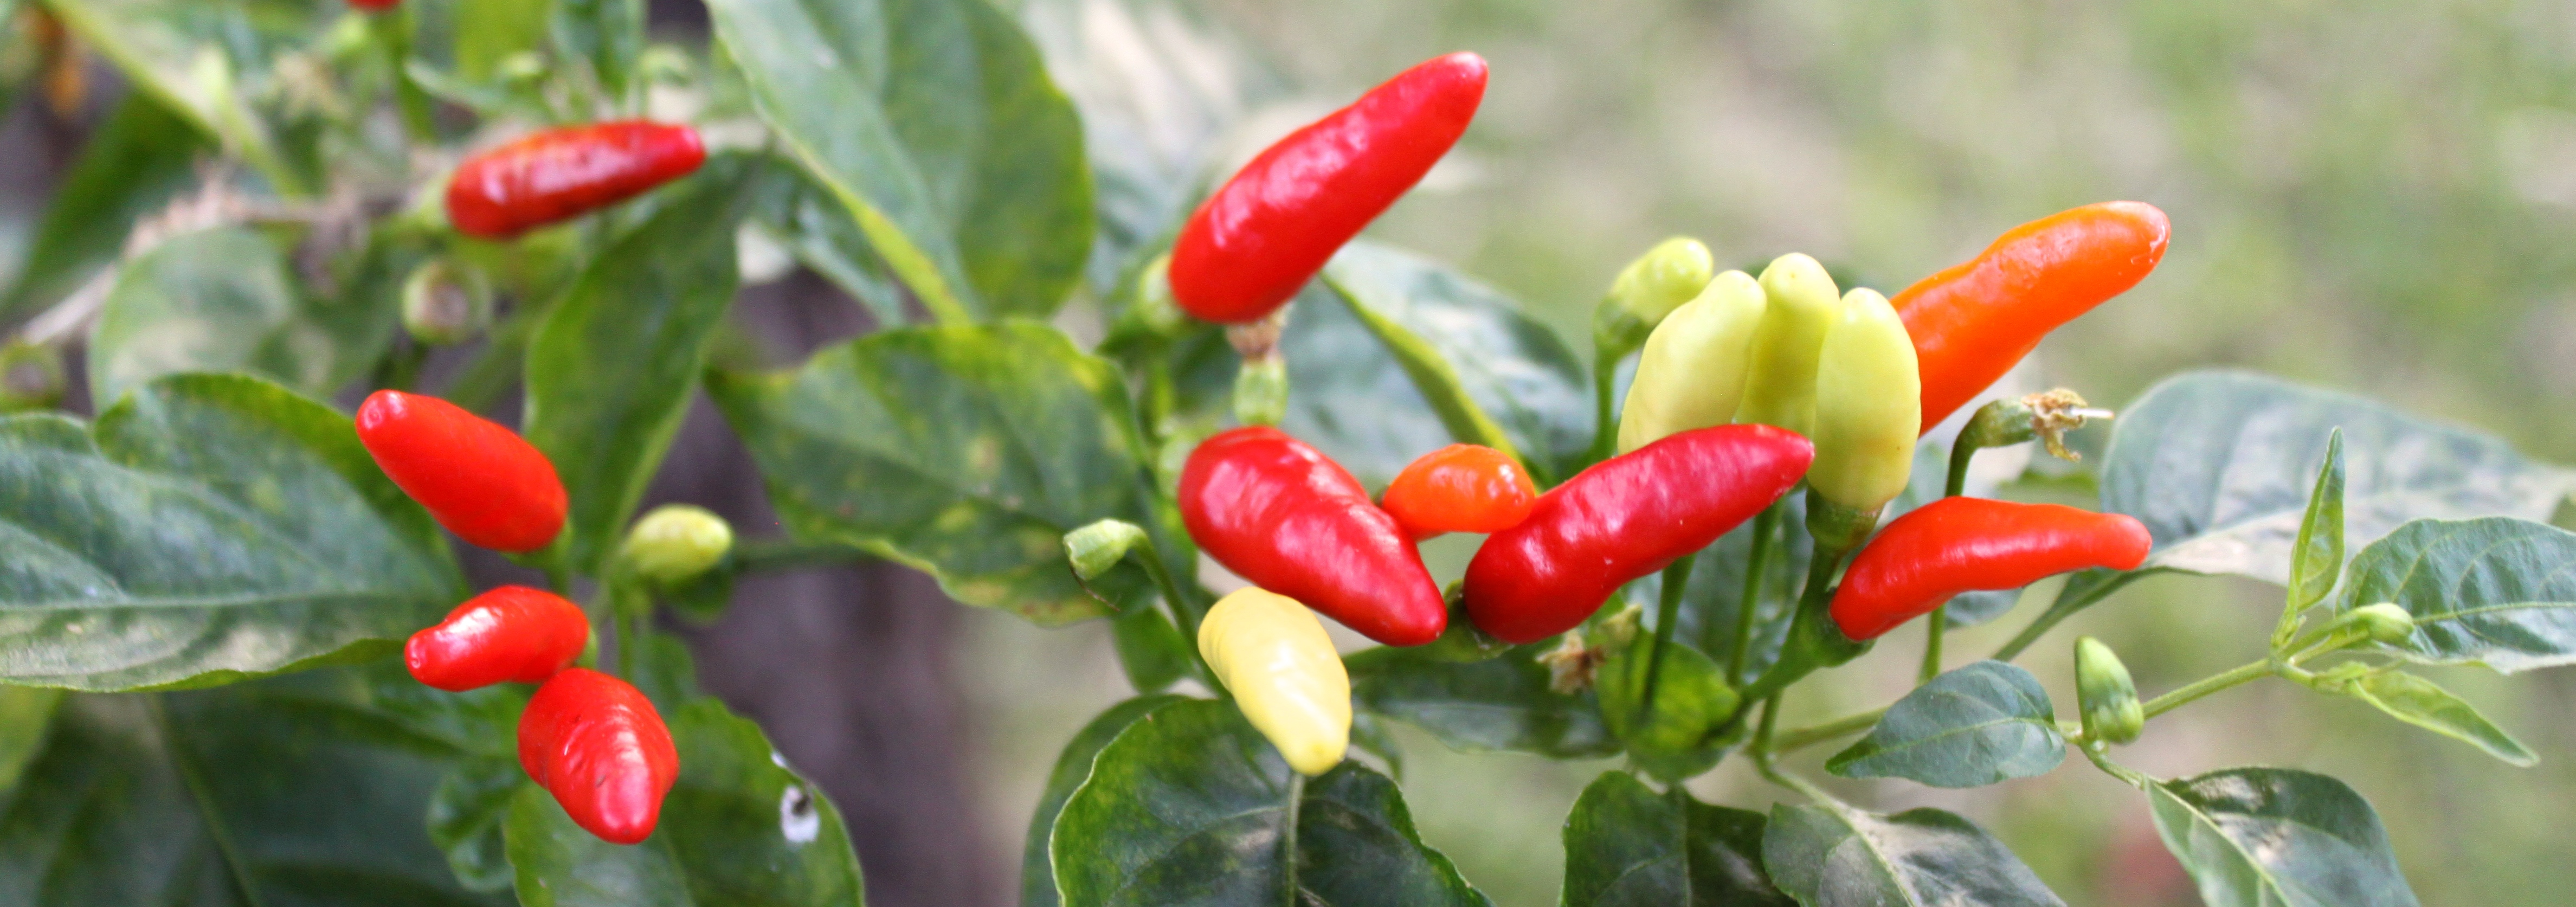 Our chillies seem to be producing the year round, although summer is when they thrive.